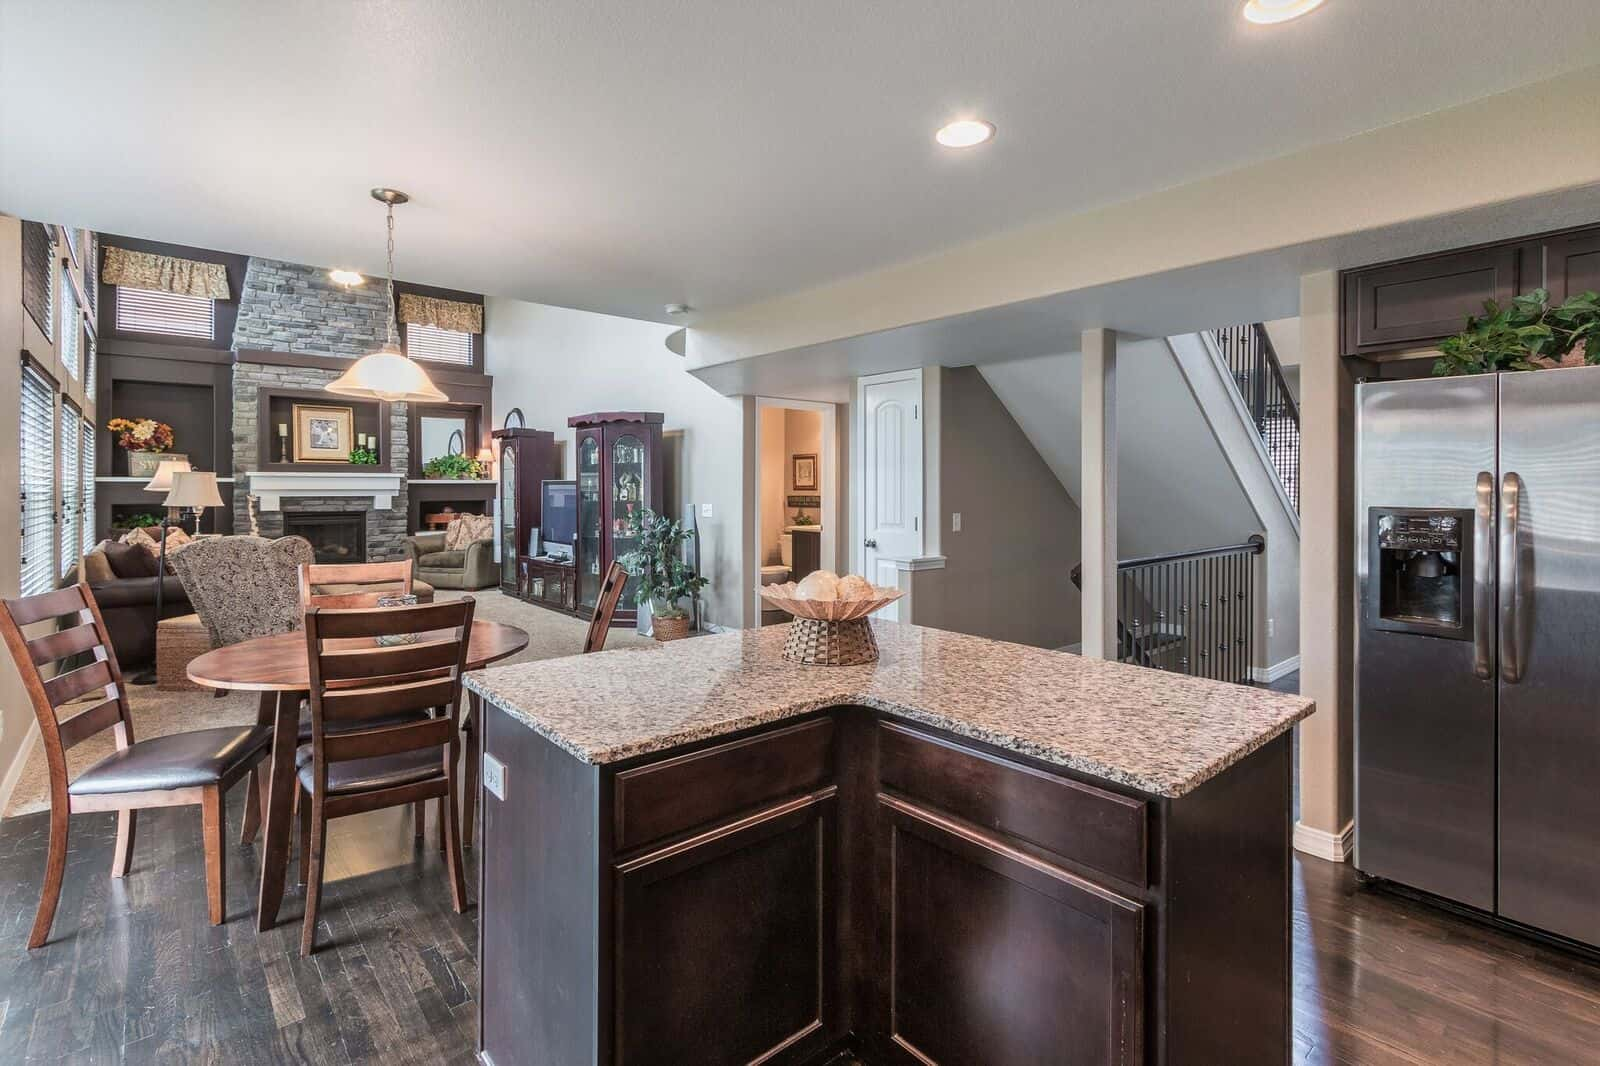 Kitchen Island into Nook and Family Room